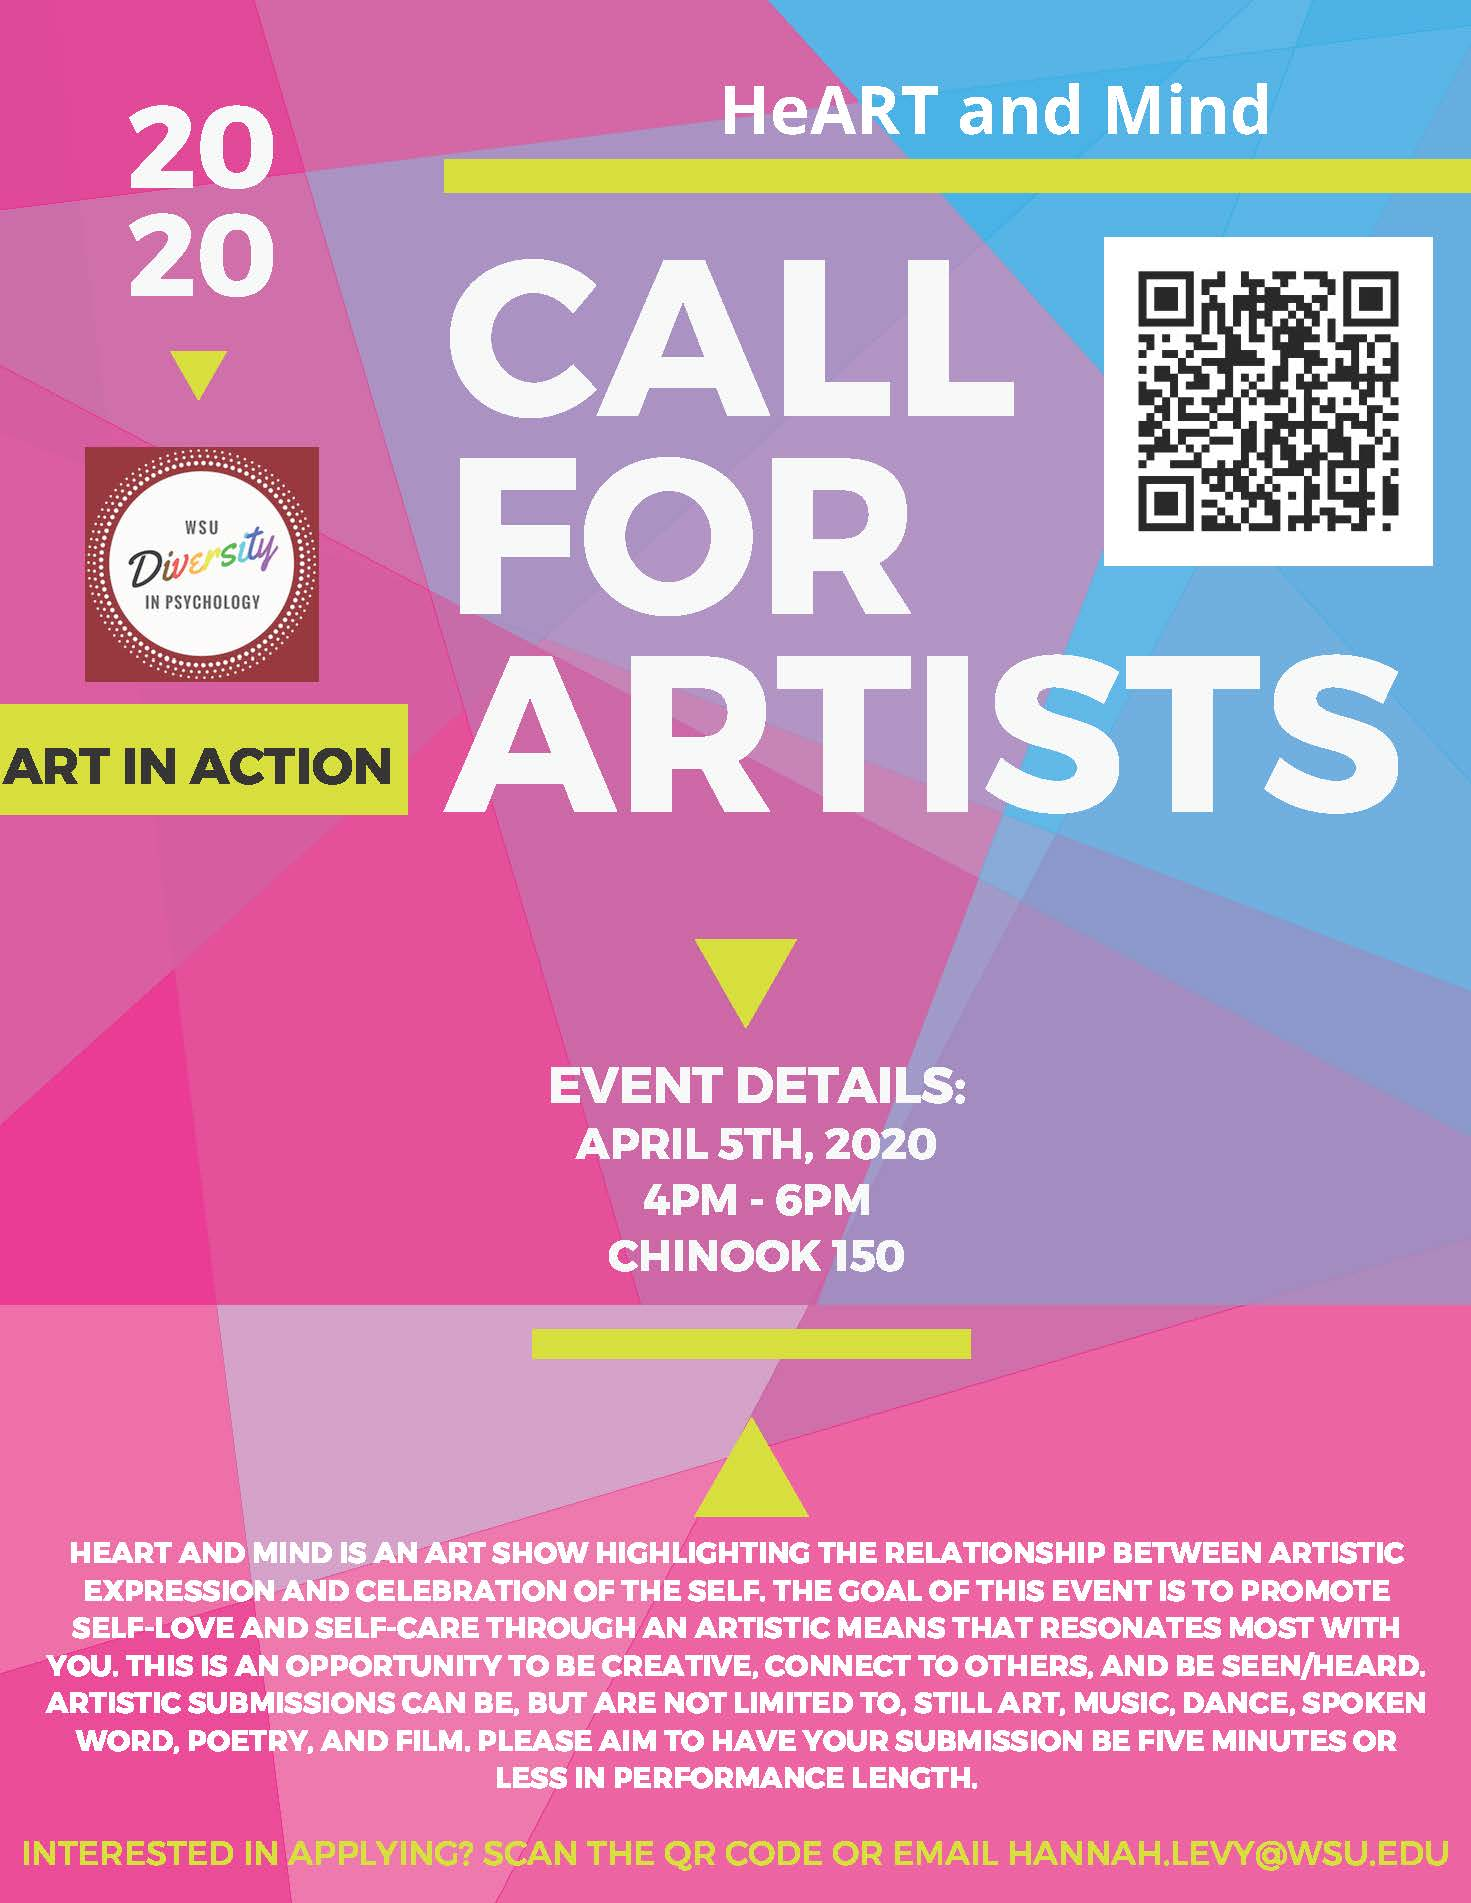 2020 Heart and Mind call for artist with event details. Details mirrored to the left of image